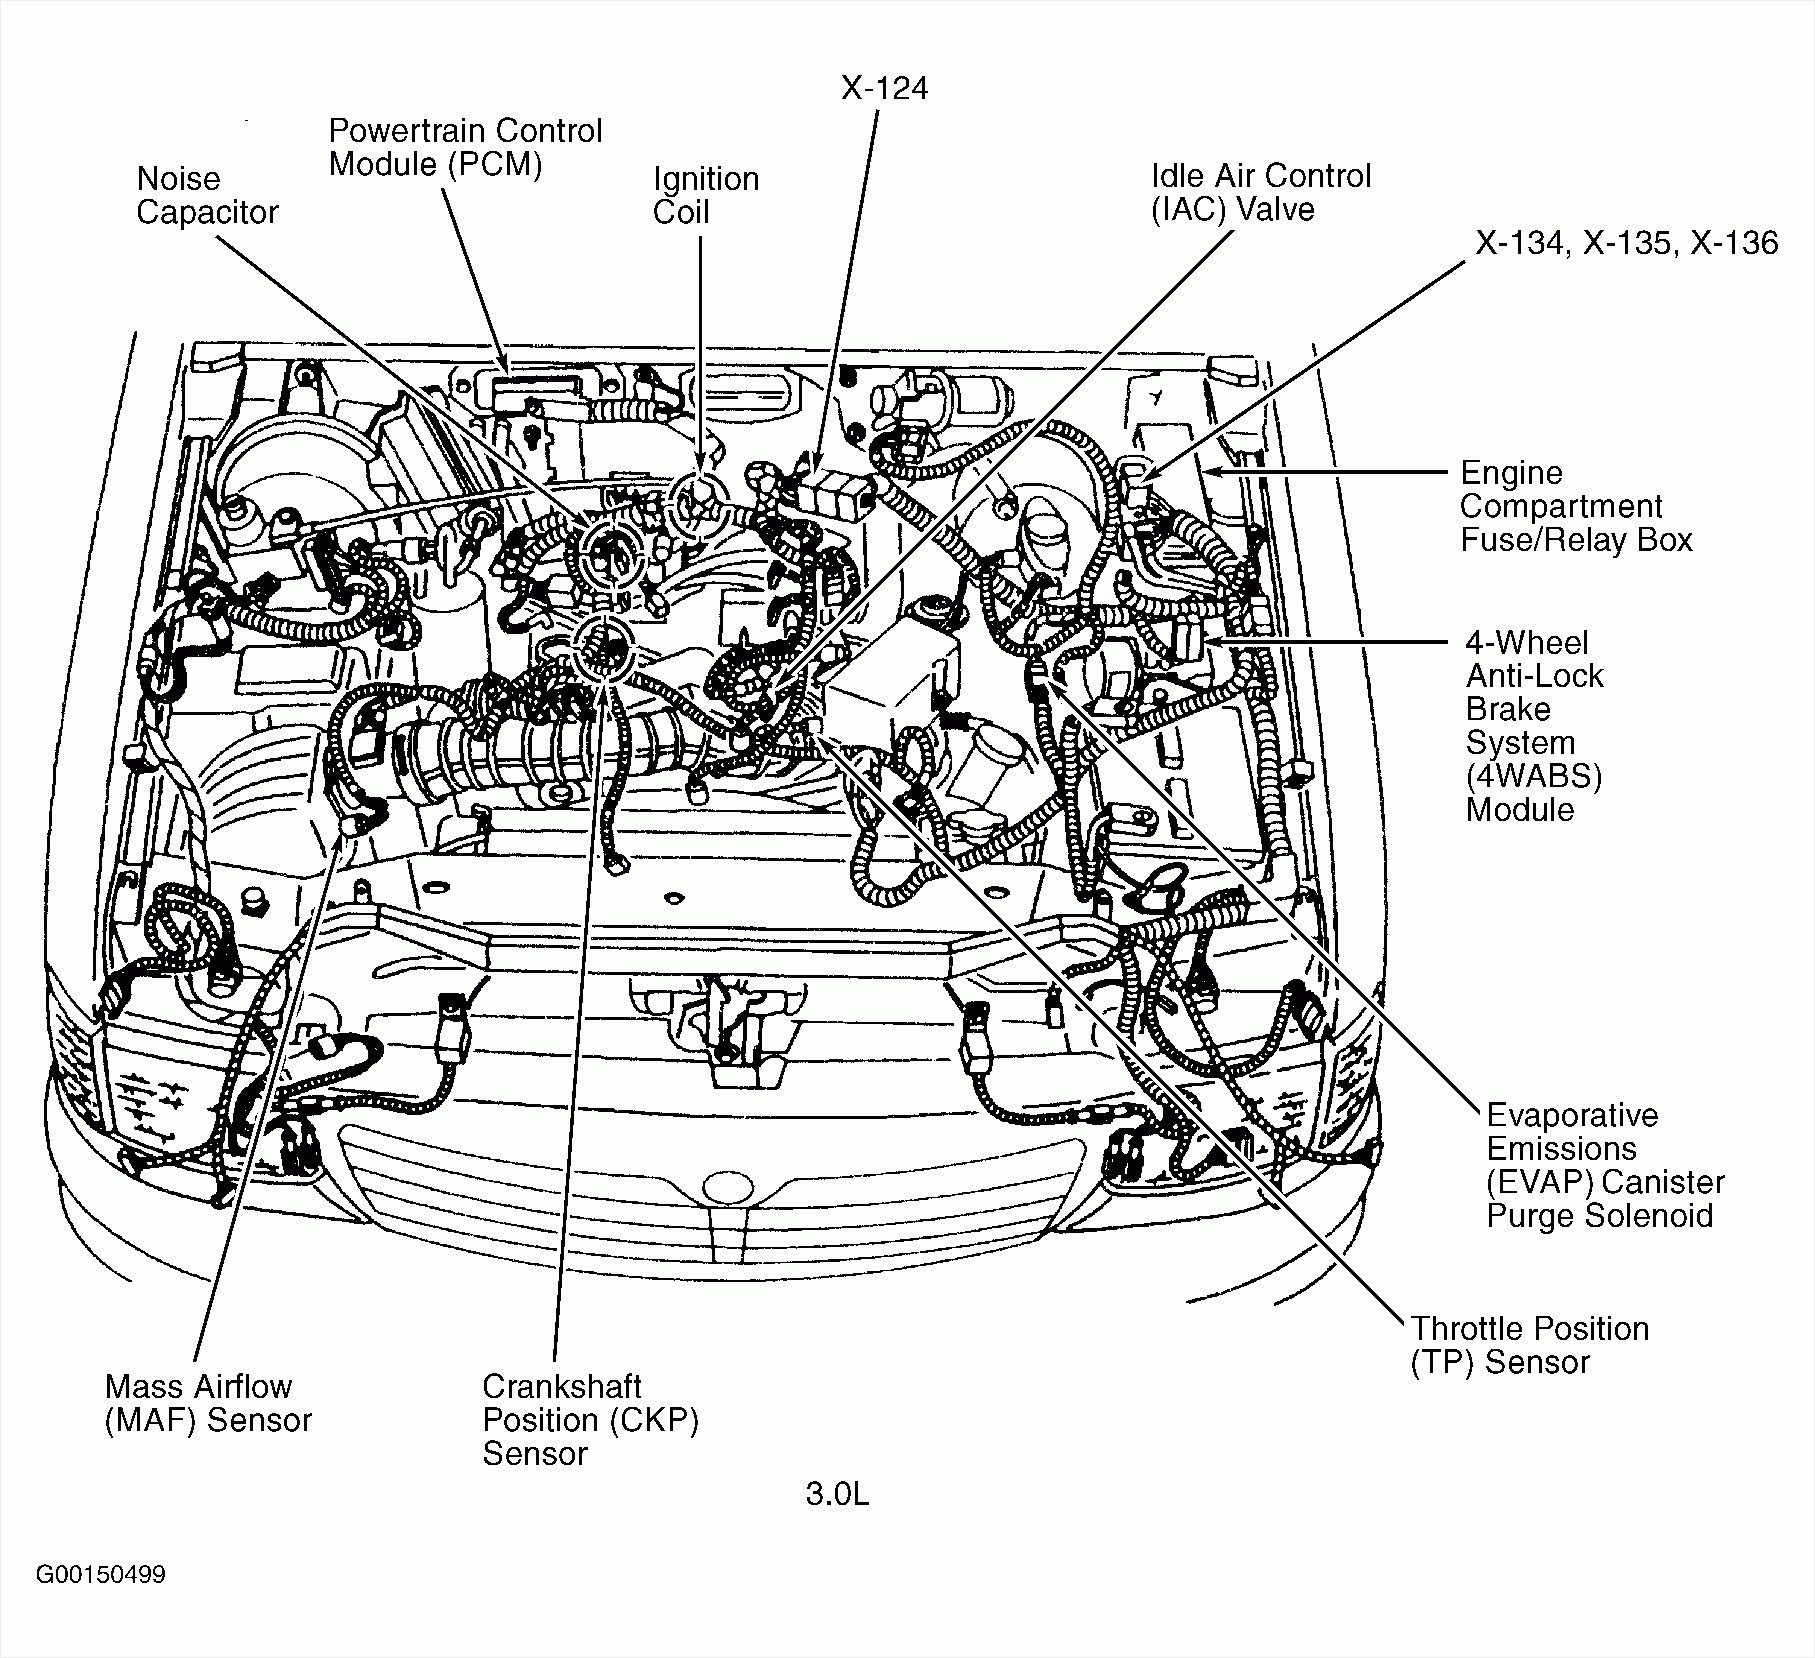 hight resolution of 1997 isuzu rodeo engine diagram also dodge intrepid 2 7 engine diagram of dodge 2 7 v6 engine